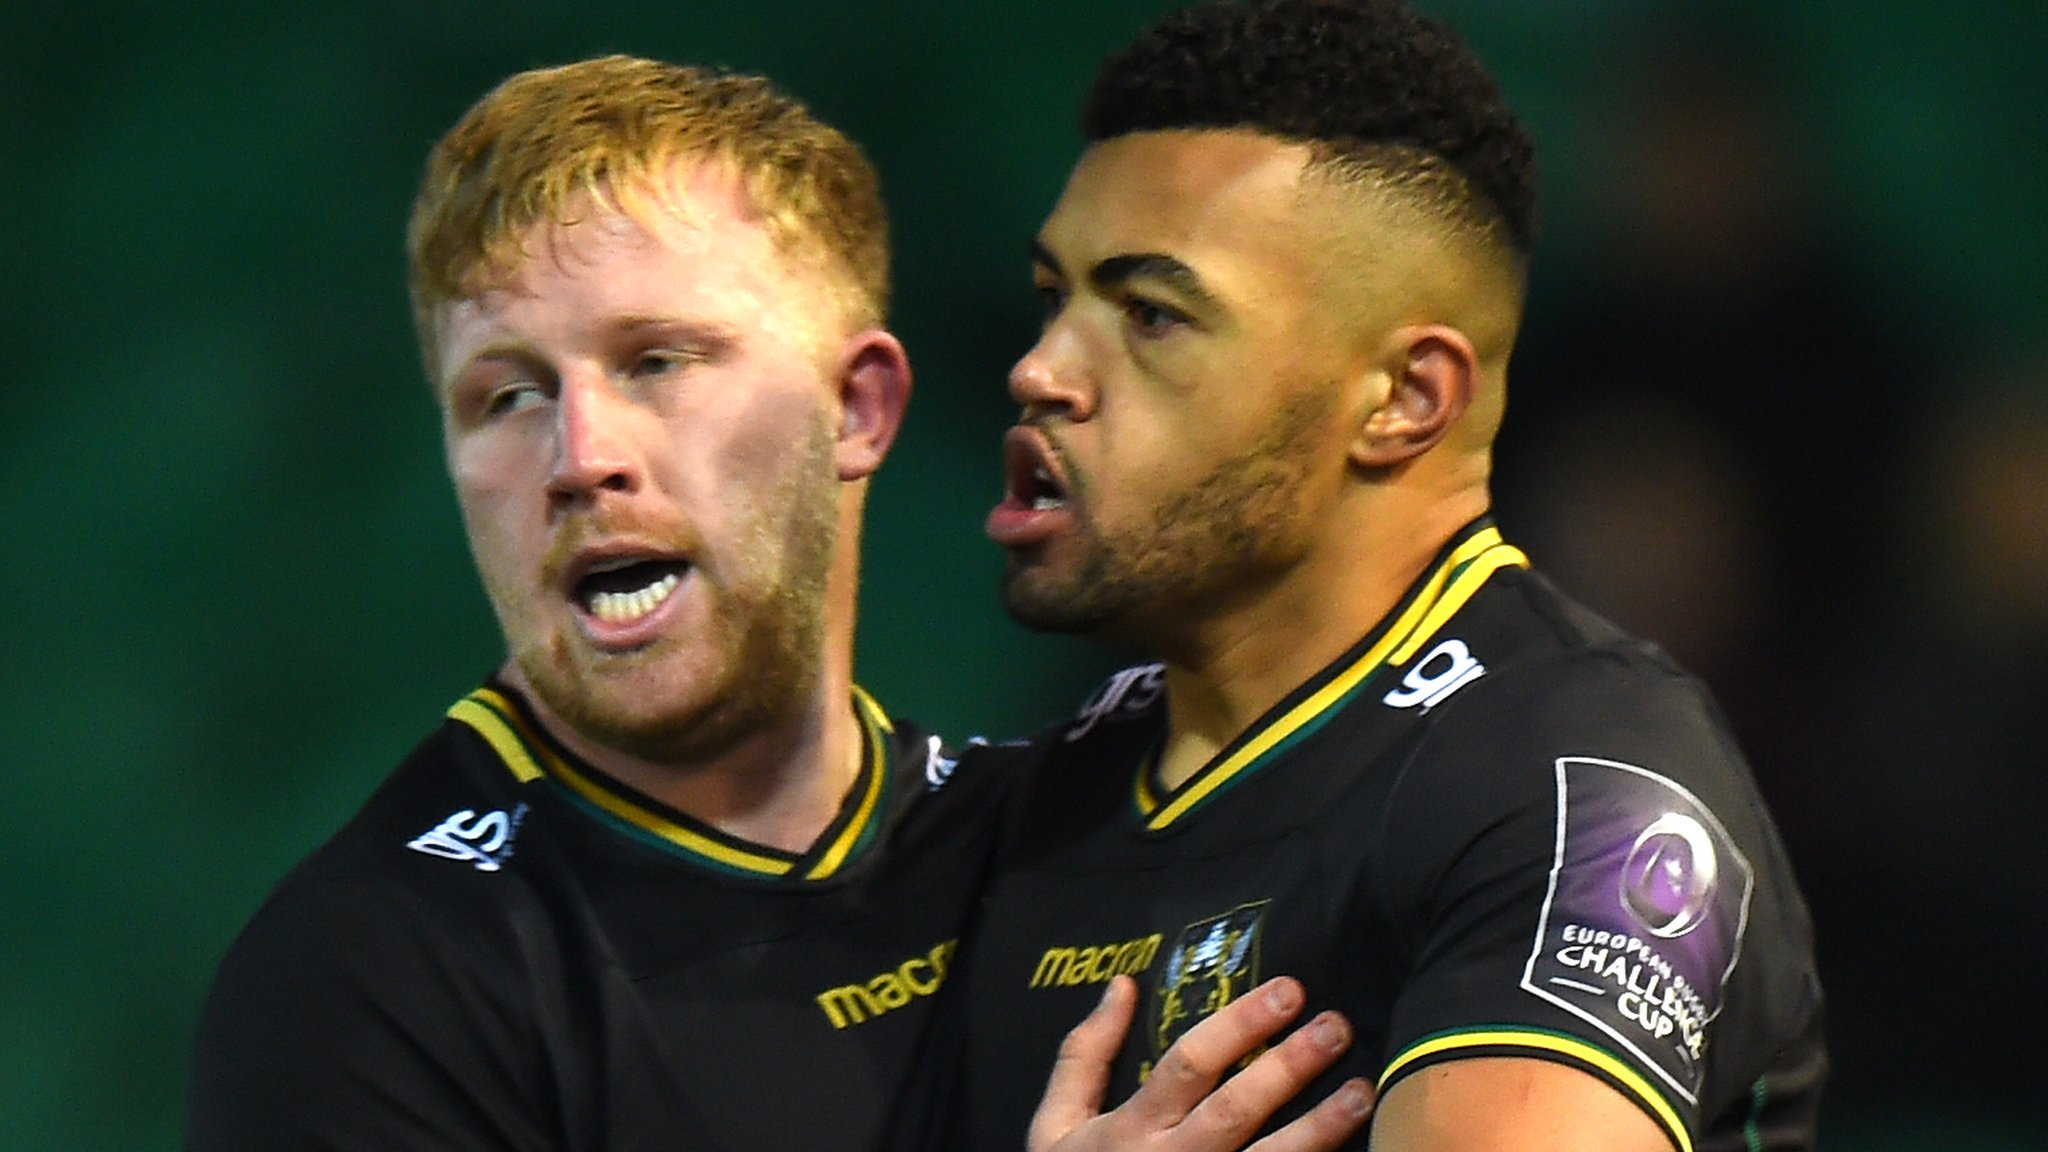 European Rugby Challenge Cup: Northampton Saints 48-14 Dragons